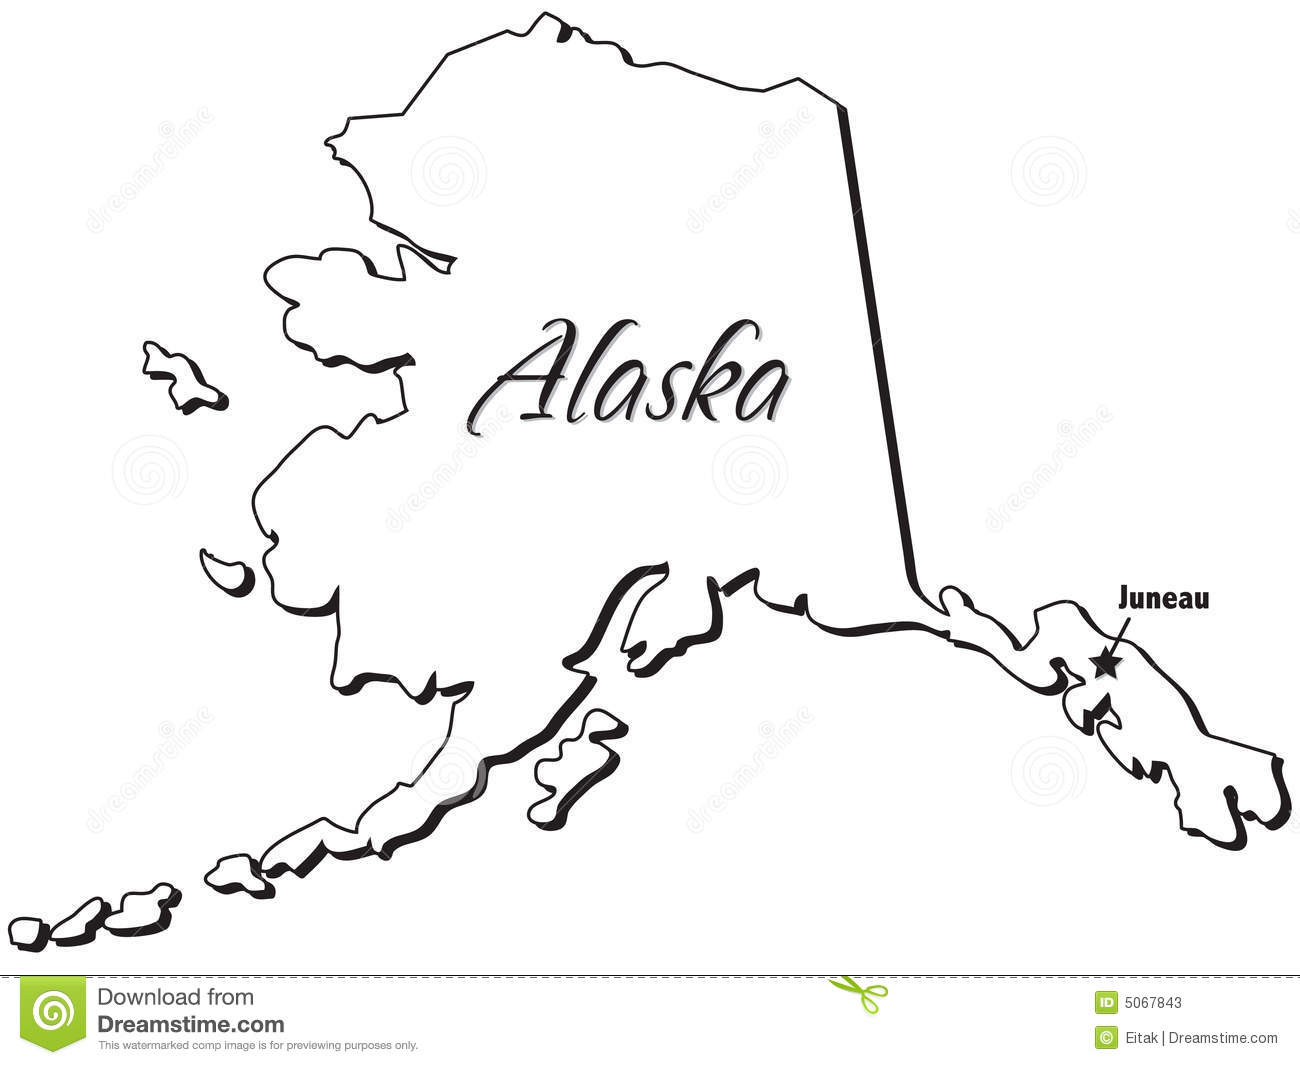 Alaska clipart sketch, Alaska sketch Transparent FREE for.